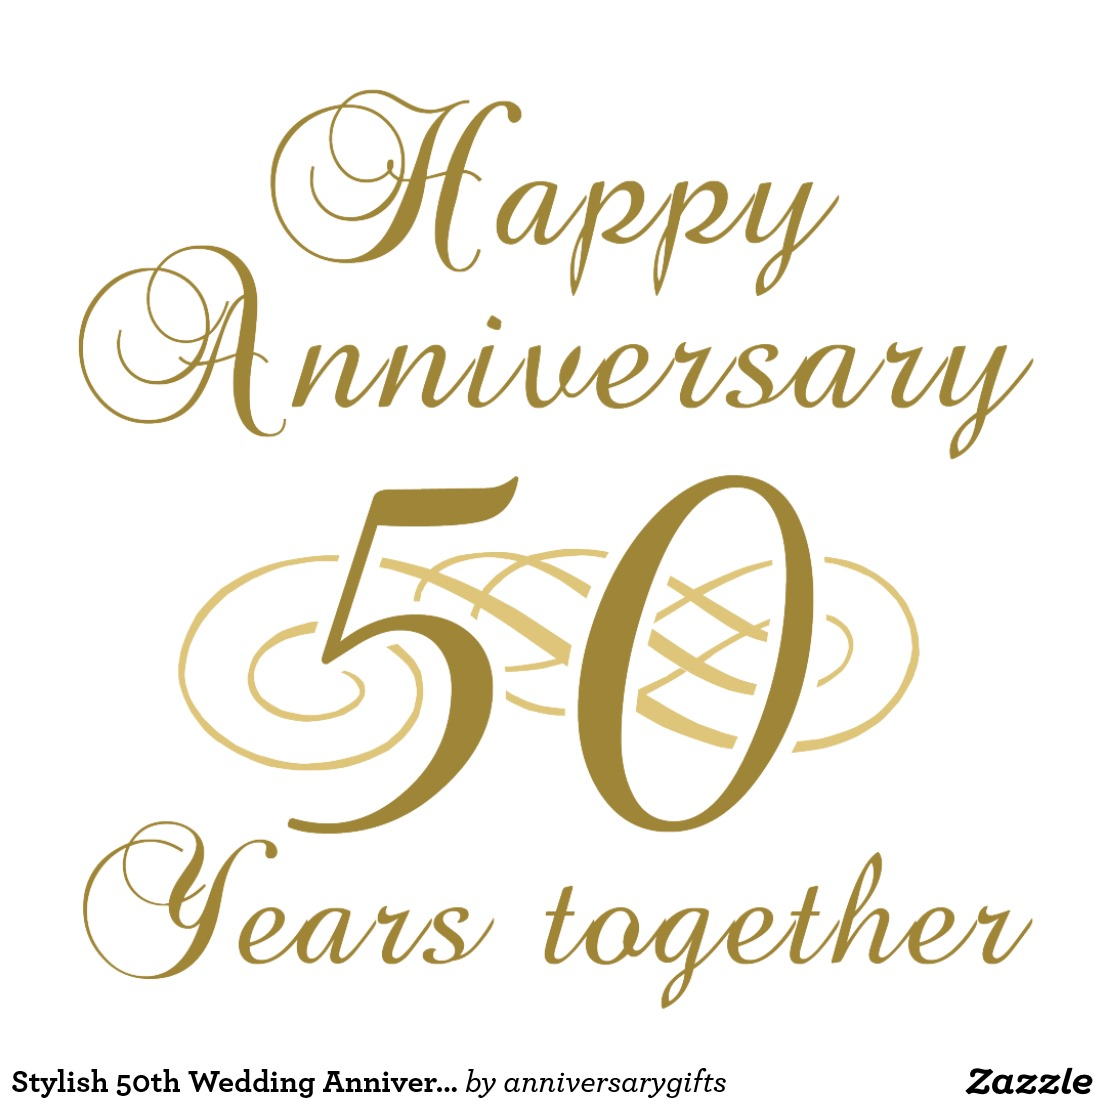 50th Wedding Anniversary. 8127ac20b7e18ad9606b057eadd4de .